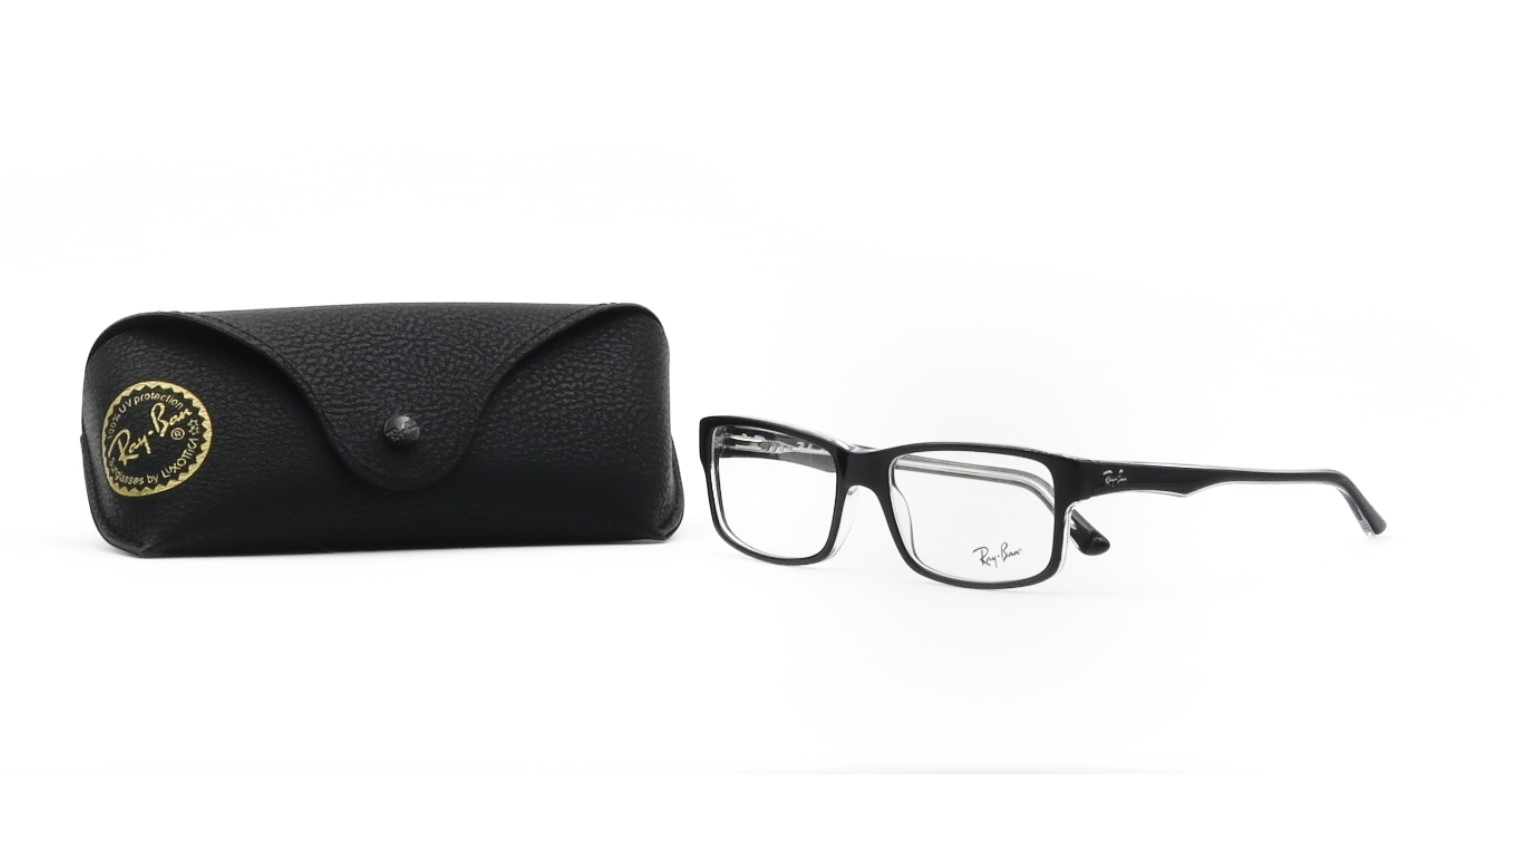 RAY-BAN Unisex Black Glasses with case RB 5245 2034 54mm